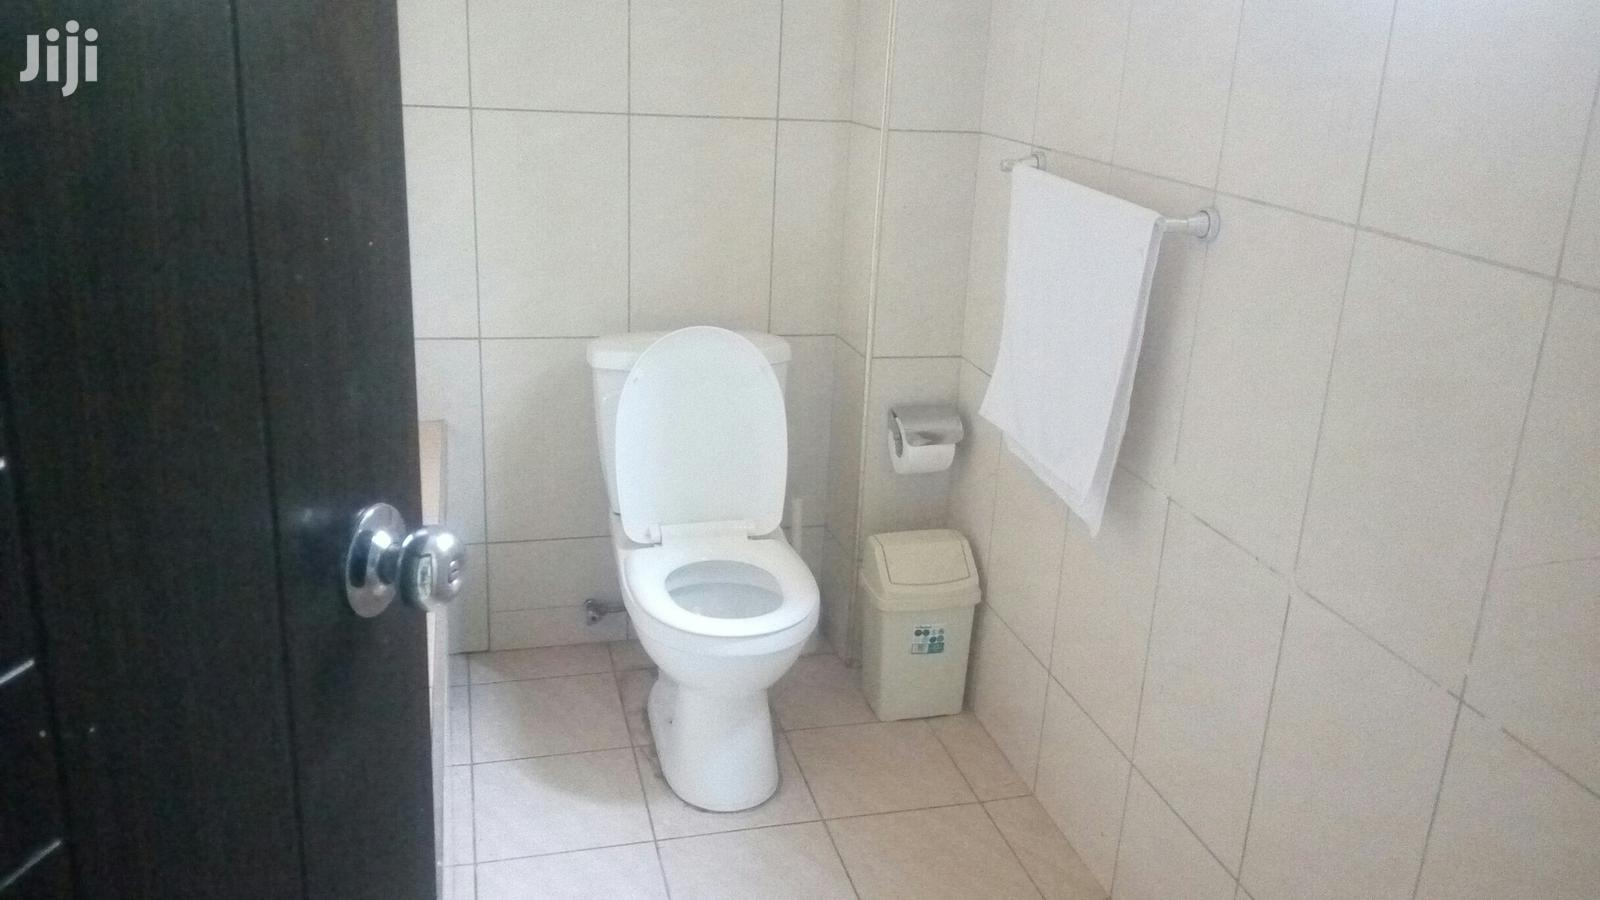 2 Bedroom Fully Furnished For Rent At East Legon | Houses & Apartments For Rent for sale in East Legon, Greater Accra, Ghana